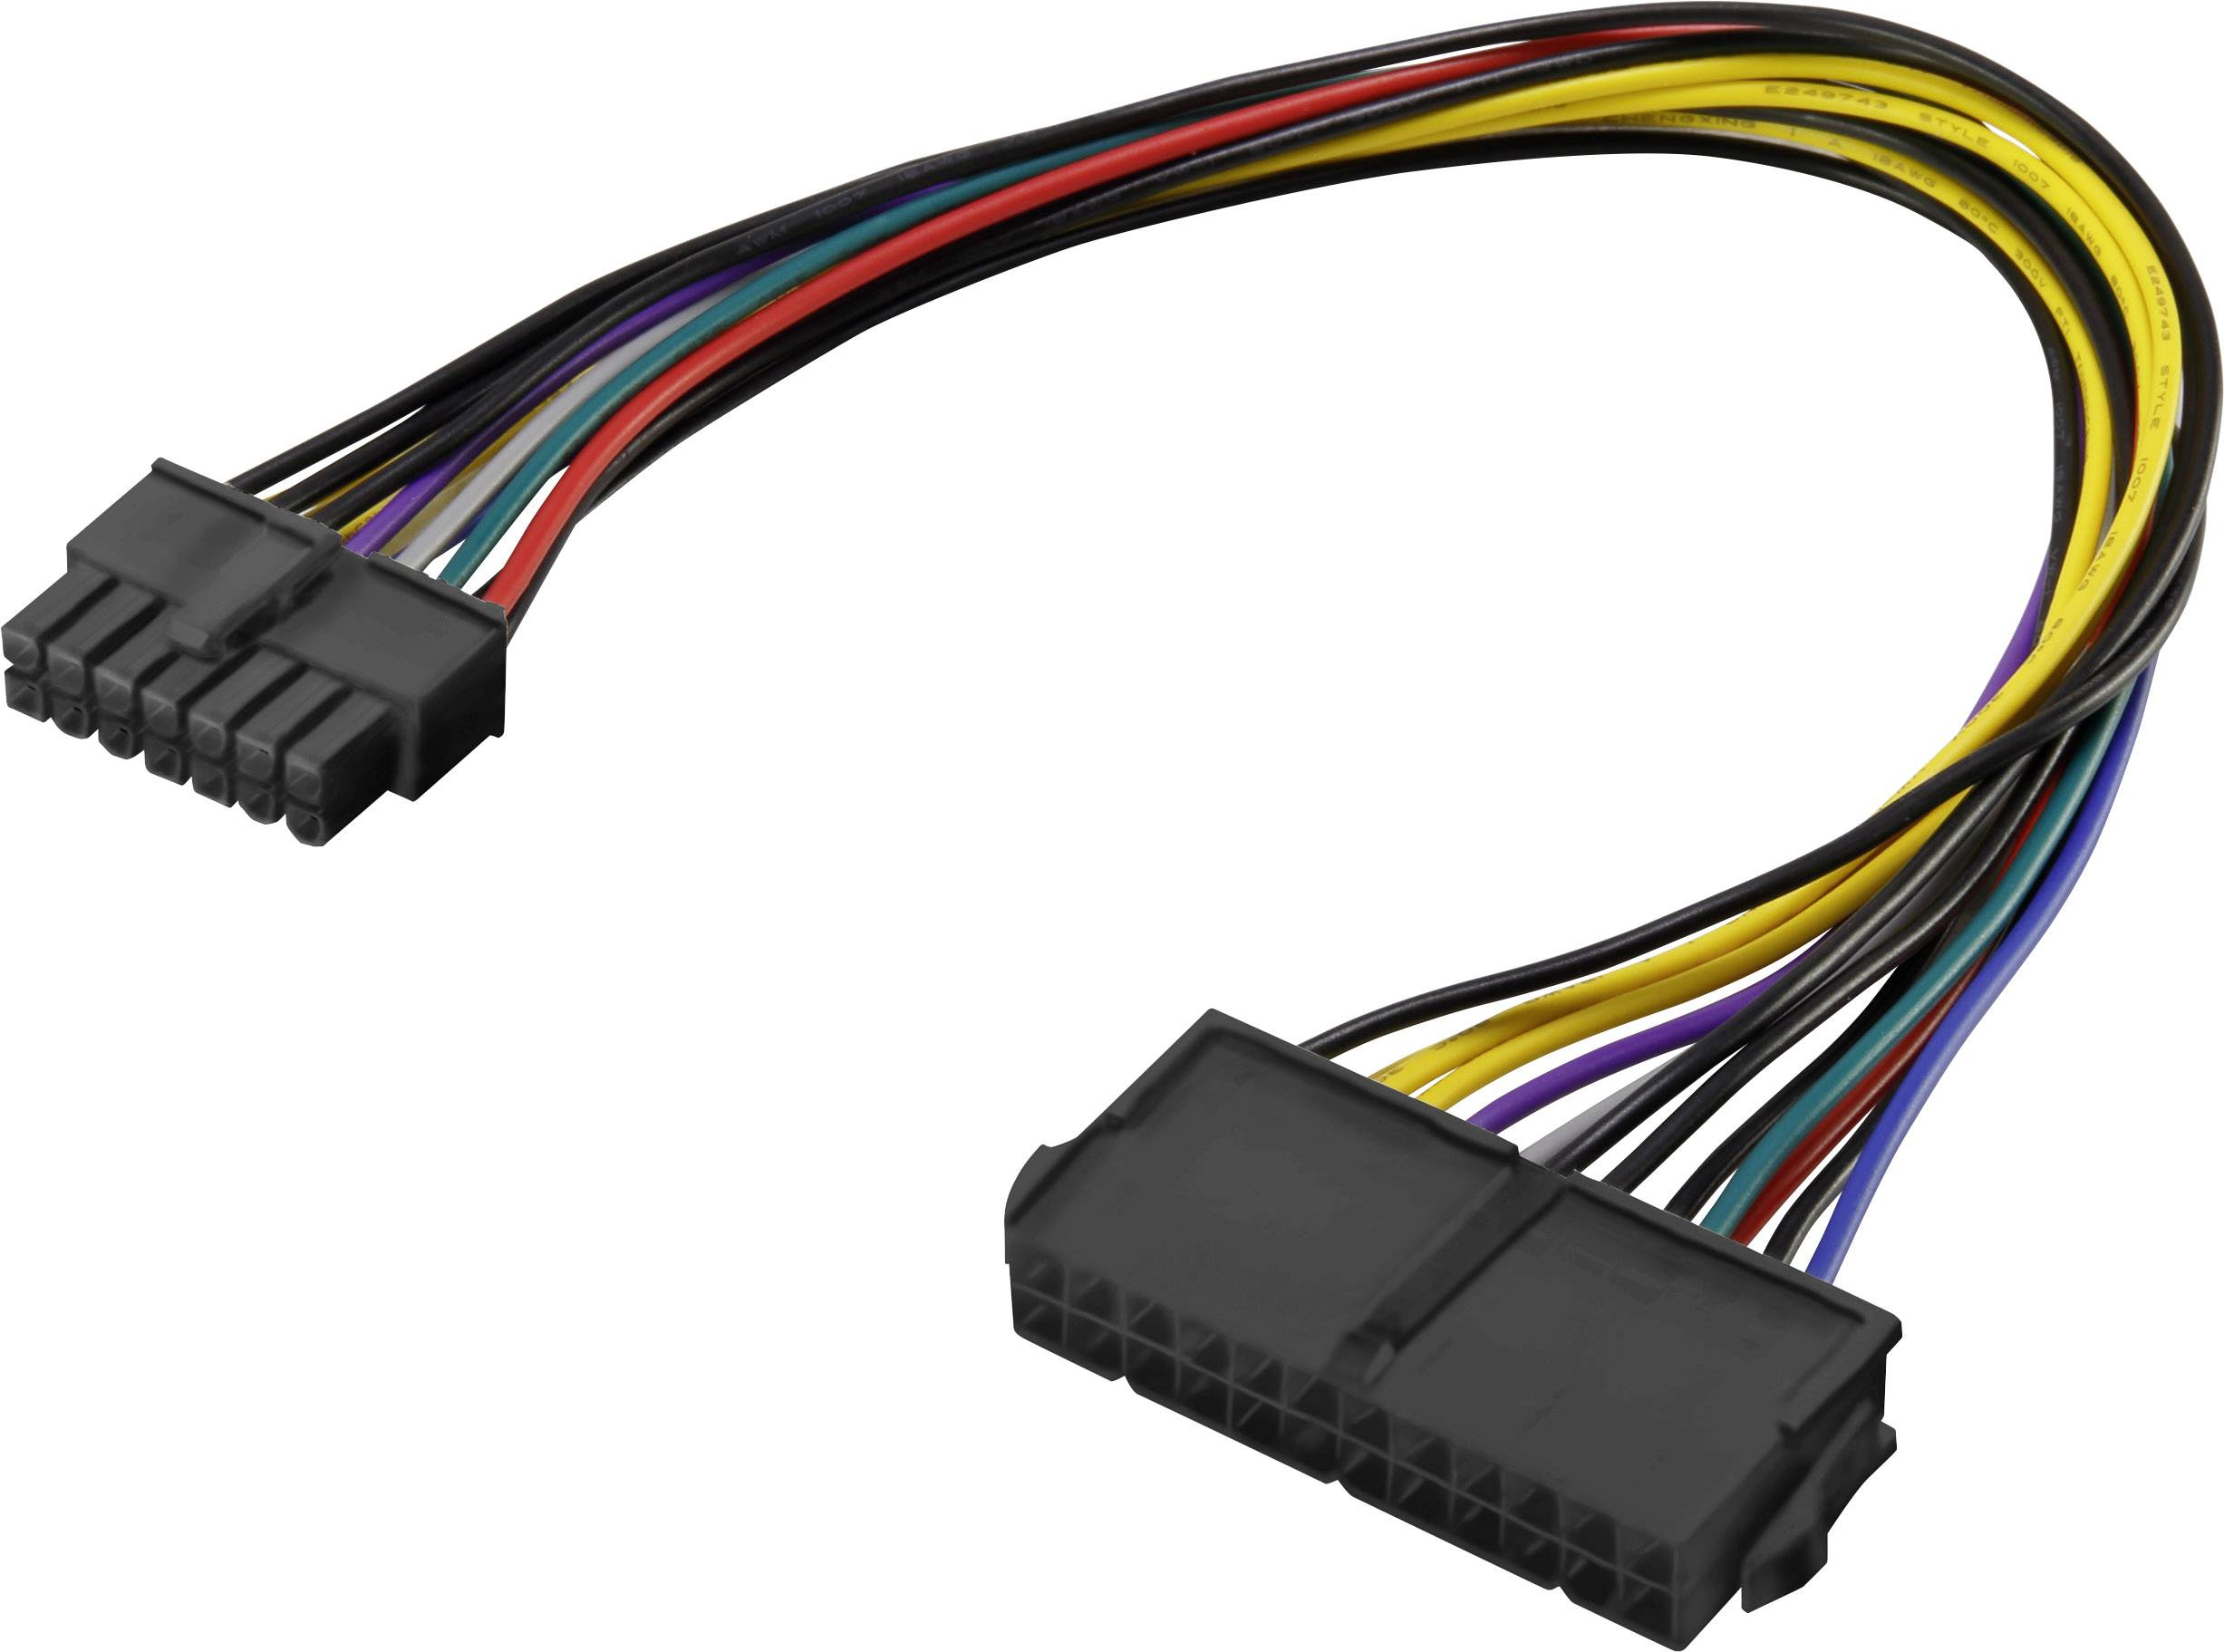 hight resolution of server mini 24 pin wiring diagram wiring library server rack visio stencil current cable 1x